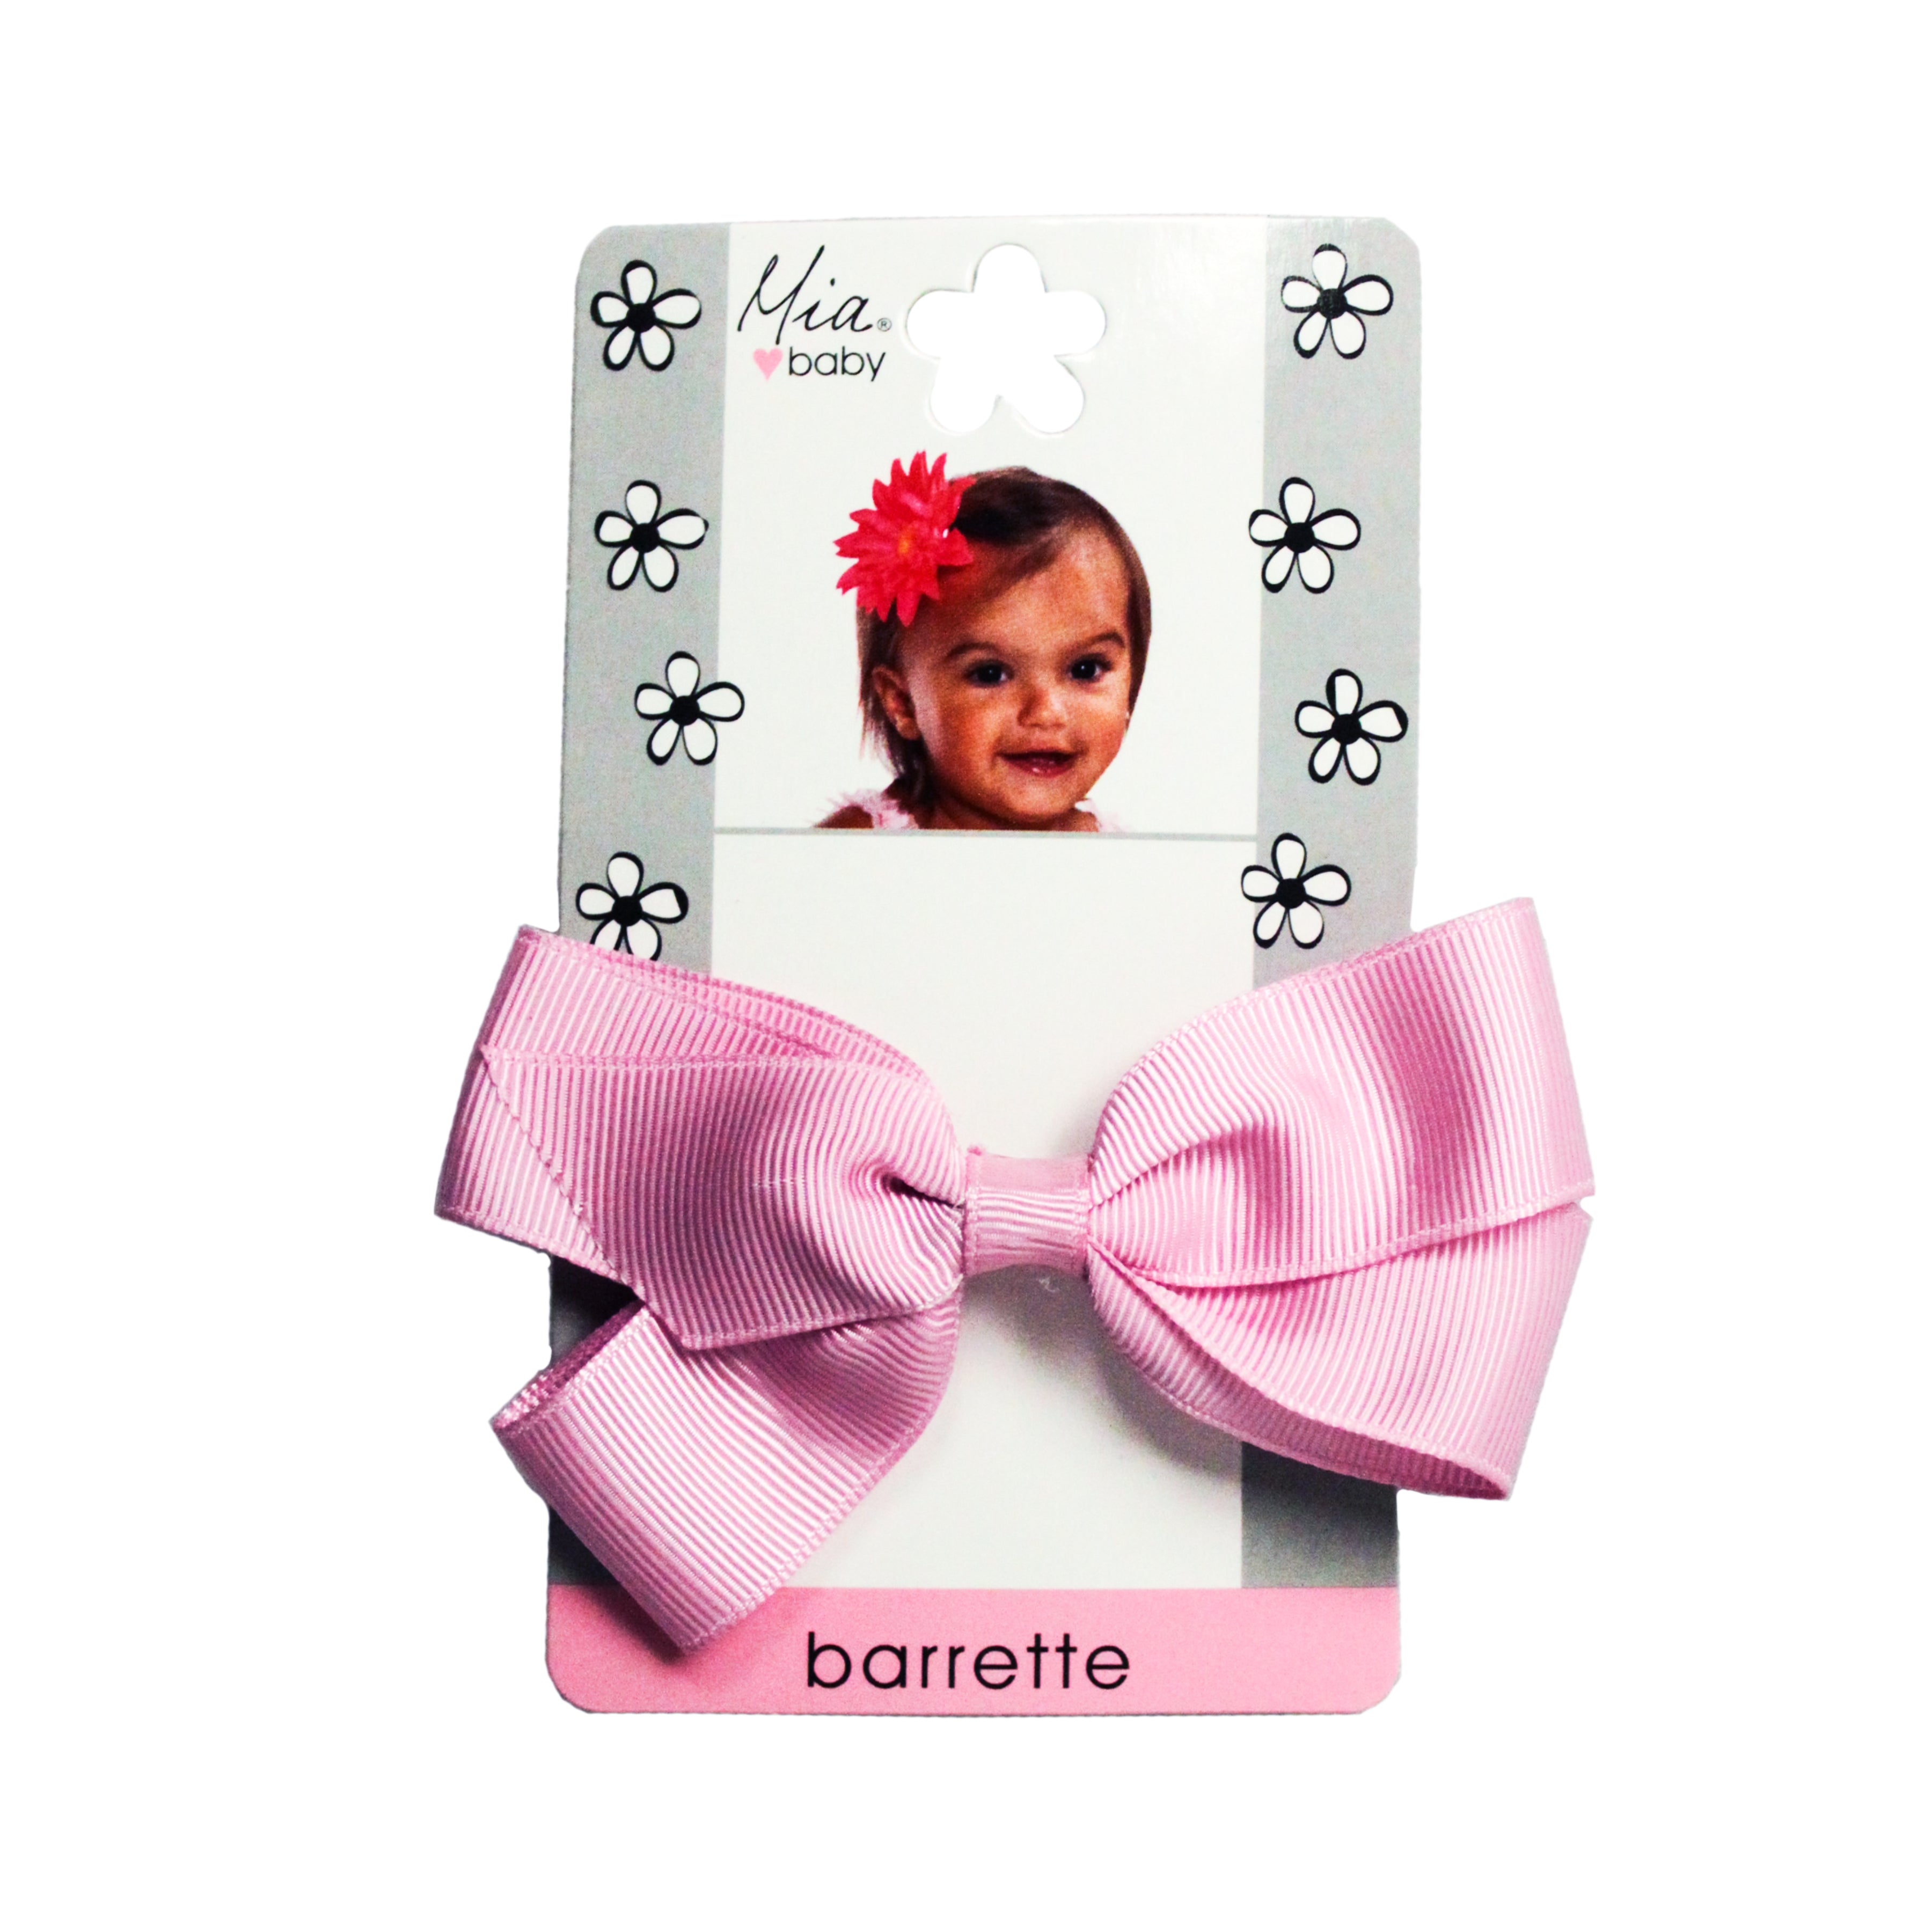 Mia® Baby Grosgrain Bow Barrette - pink color - shown on packaging - by #MiaKaminski #Mia #MiaBeauty #beauty #hair #HairAccessories #baby #girlhairaccessories #hairclips #hairbarrettes #barrette #lovethis #love #life #woman